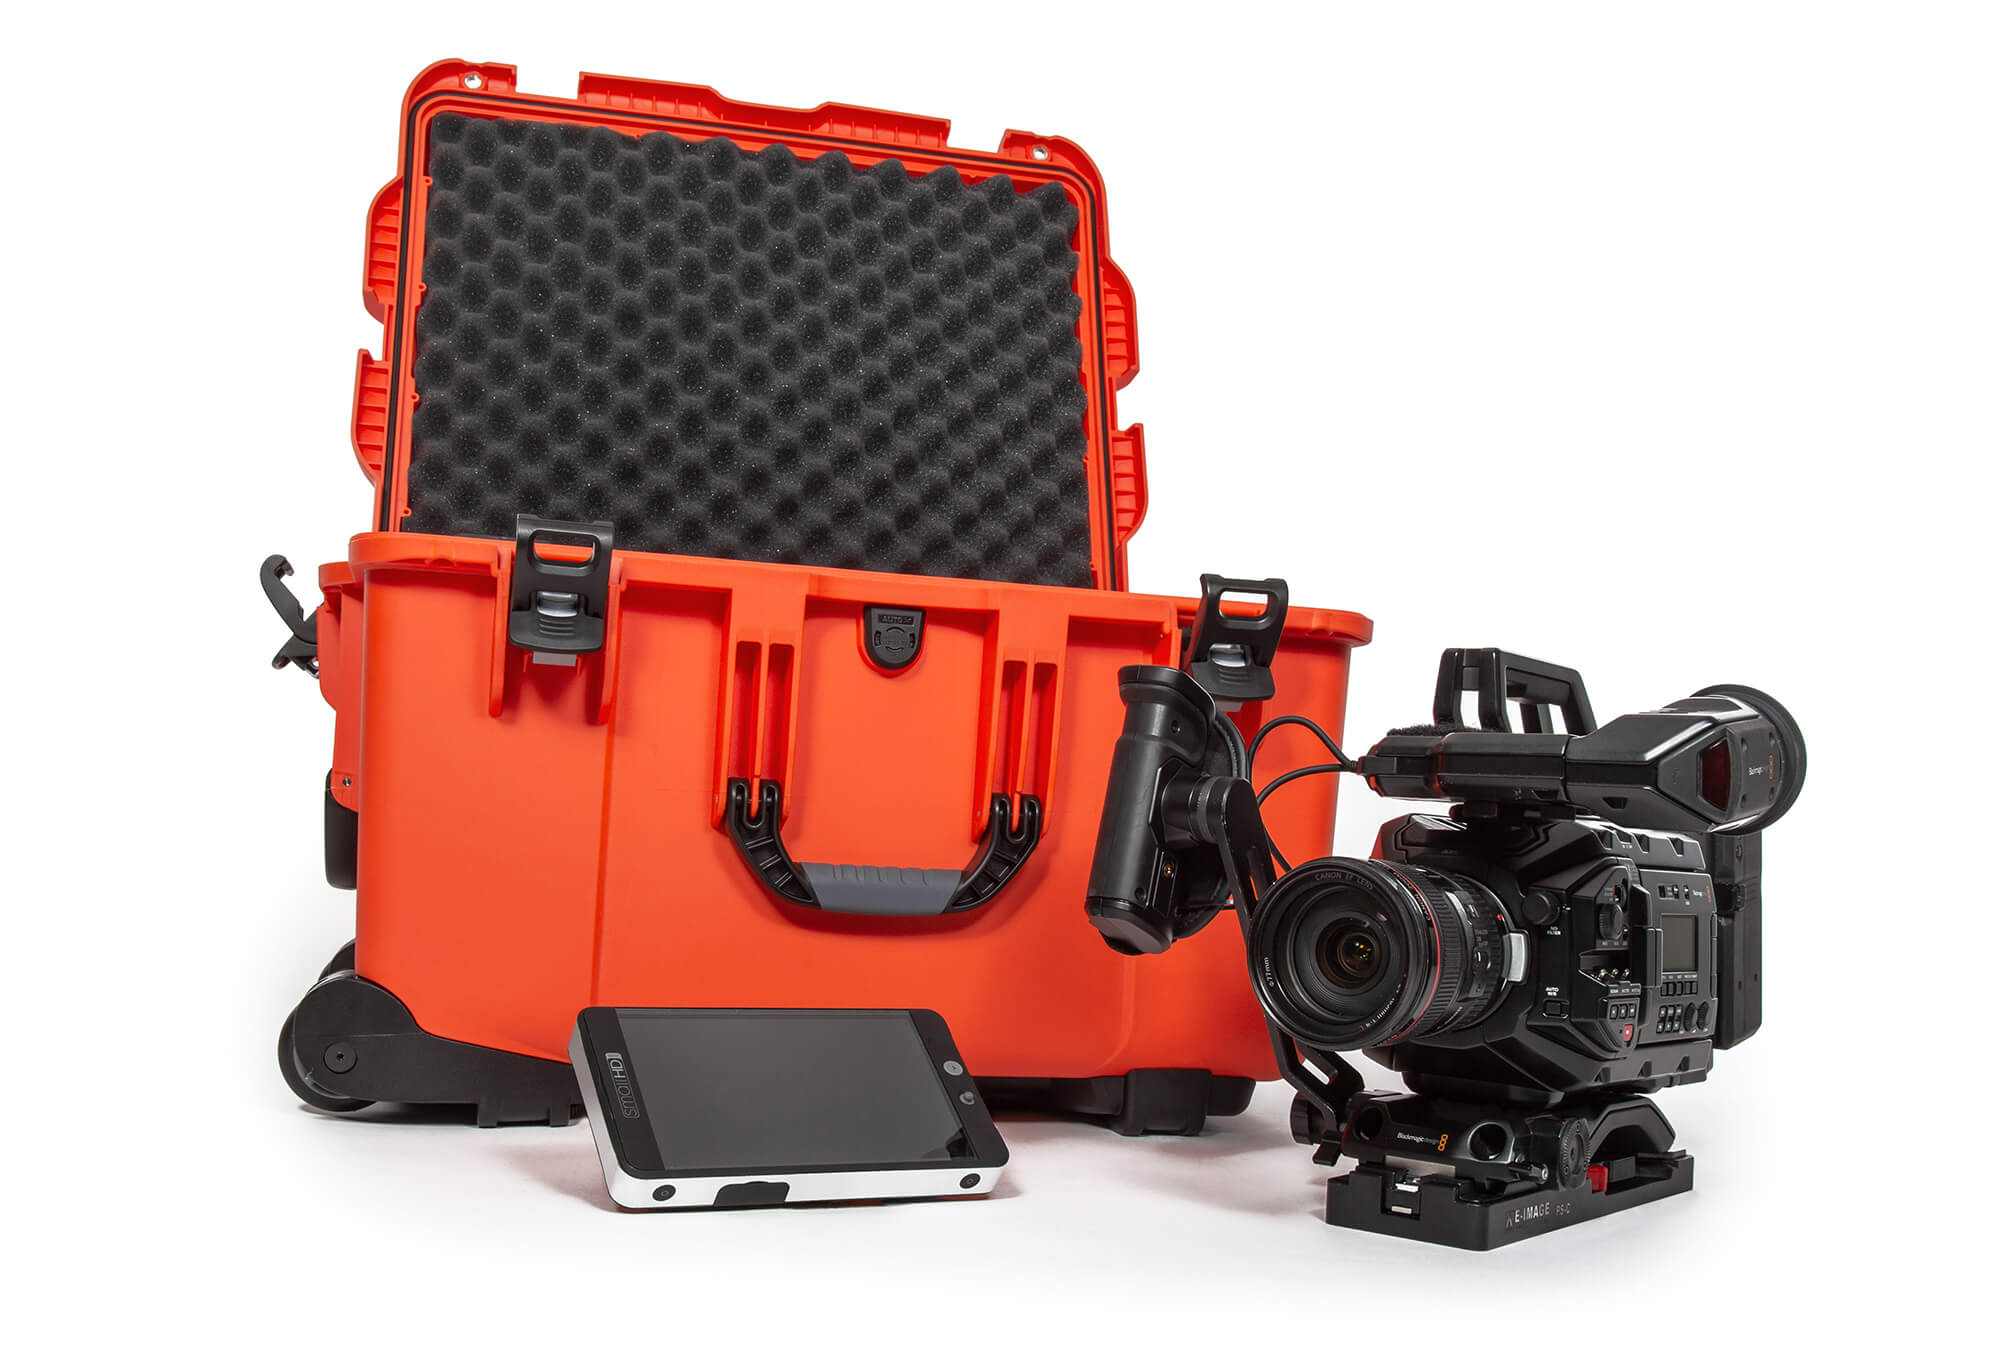 Nanuk 960 for the Blackmagic URSA camera